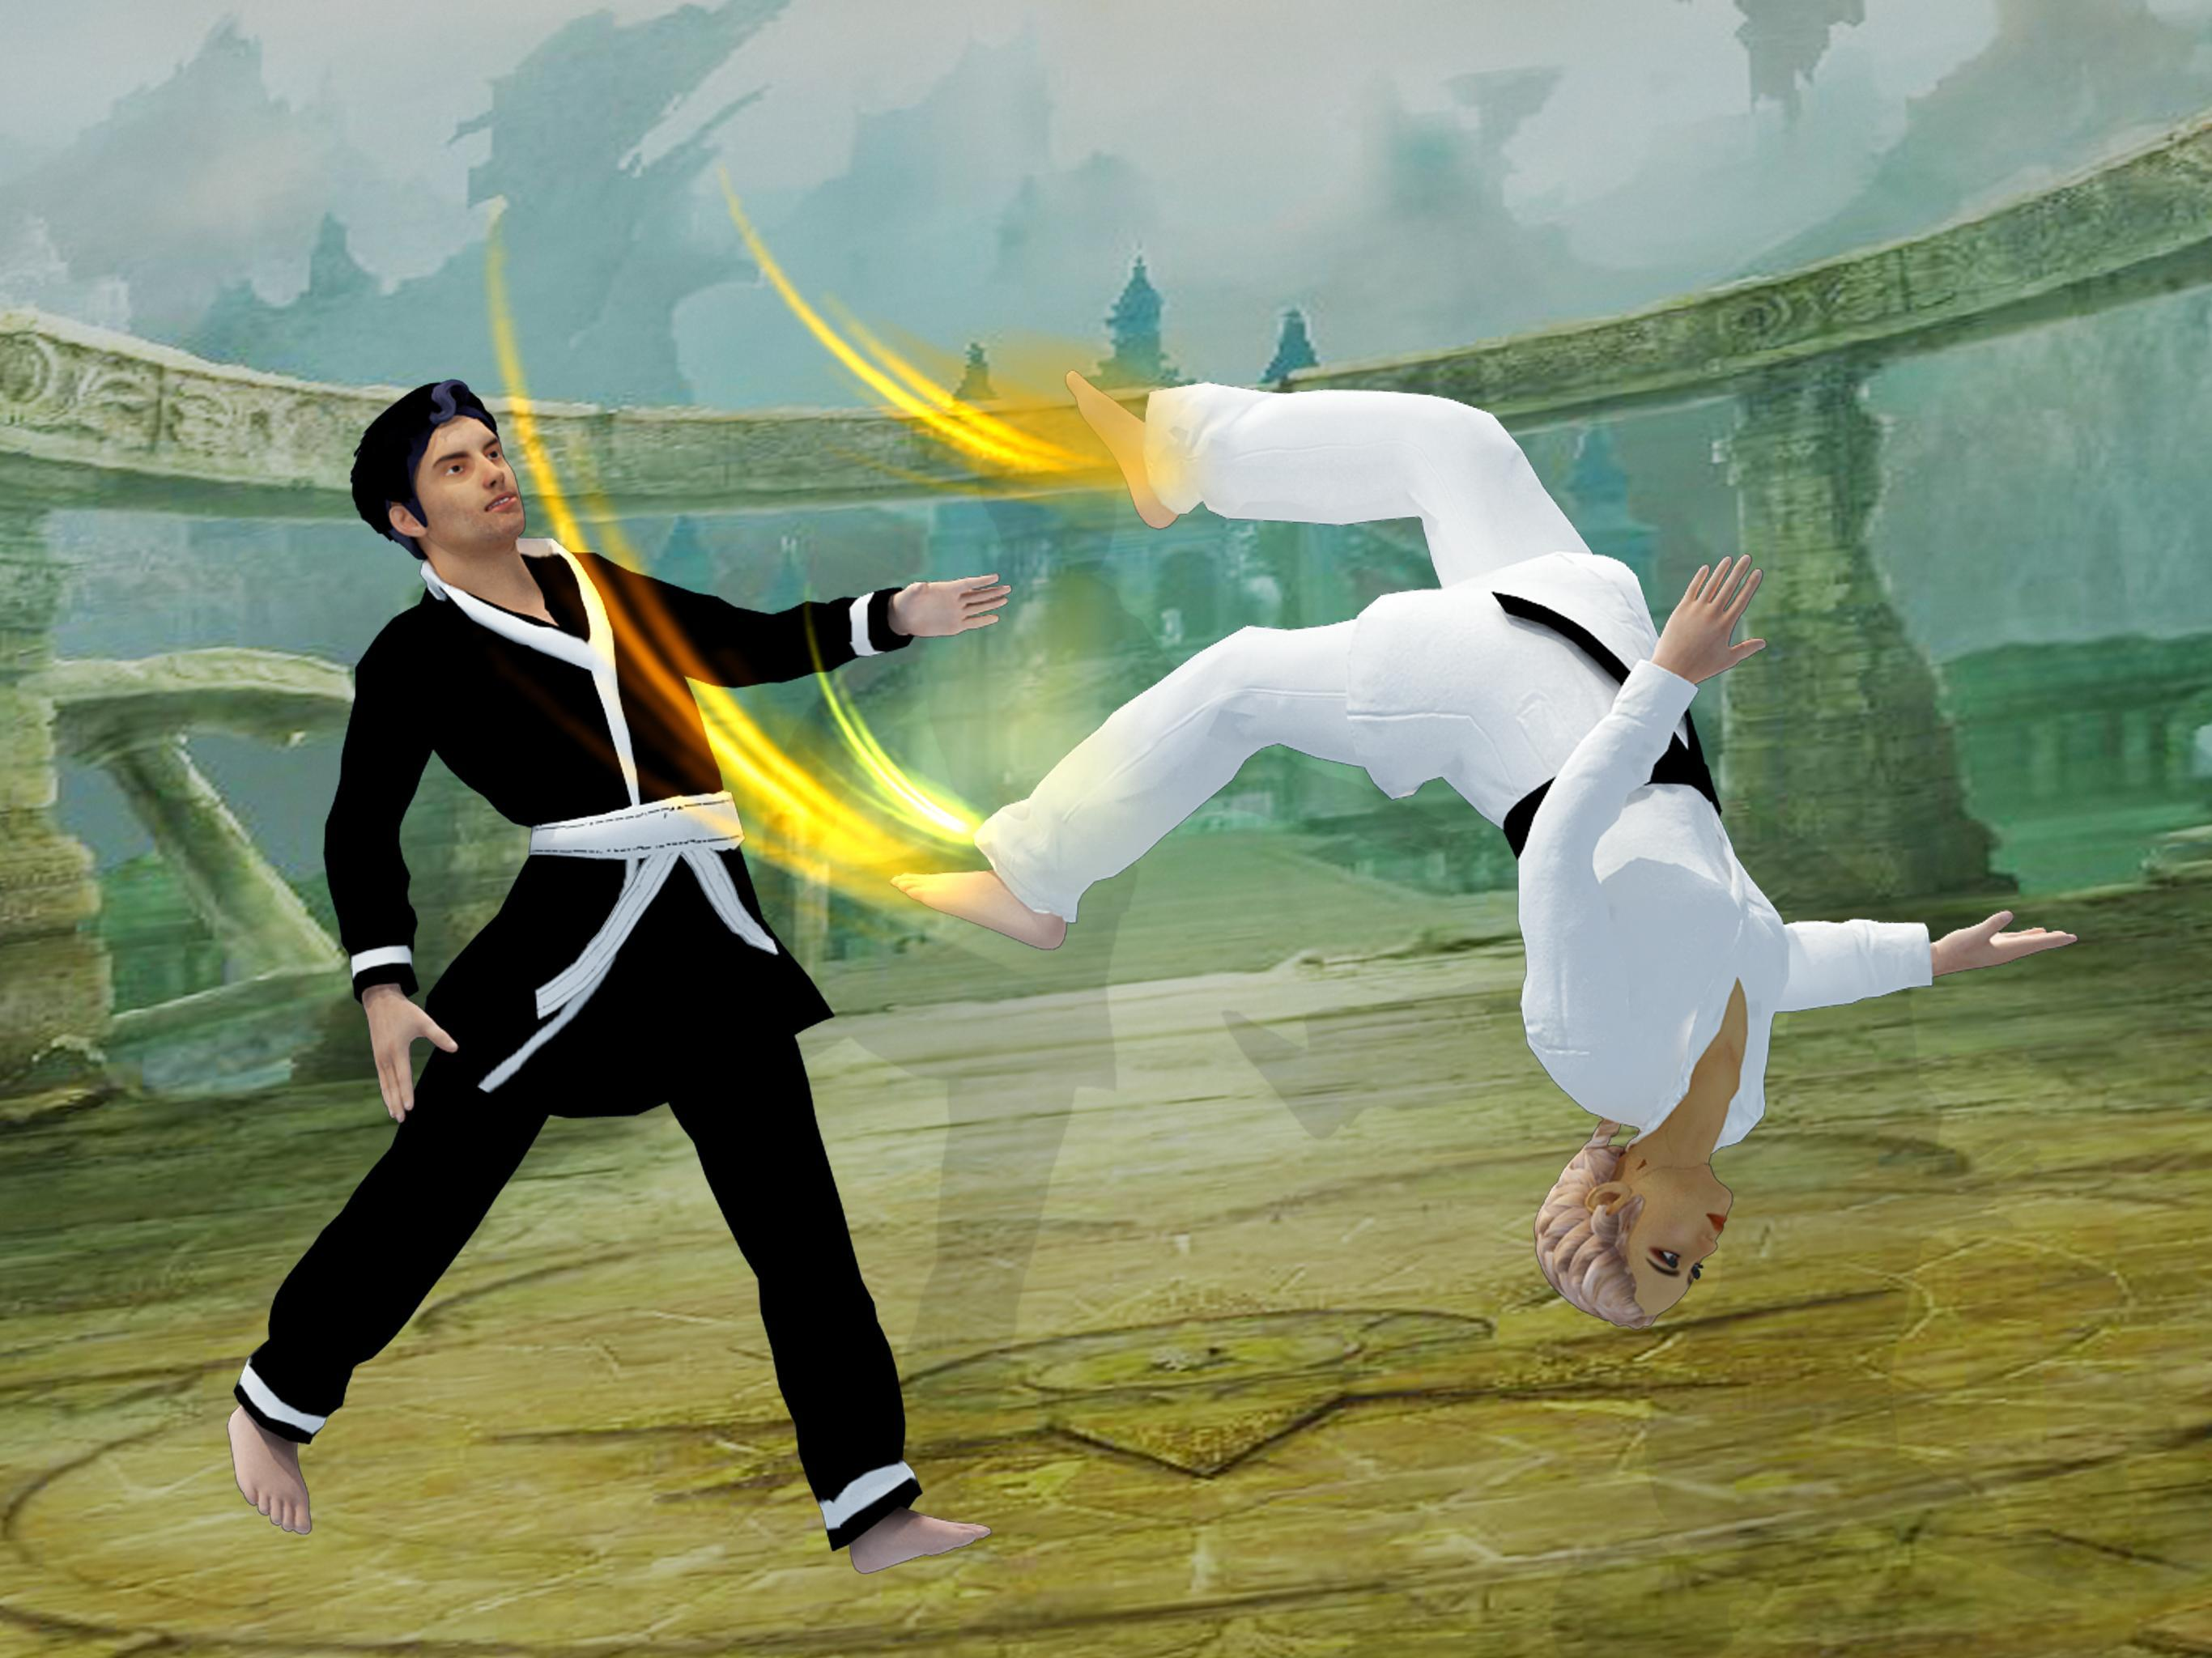 Karate Fighting Kung Fu Tiger for Android - APK Download